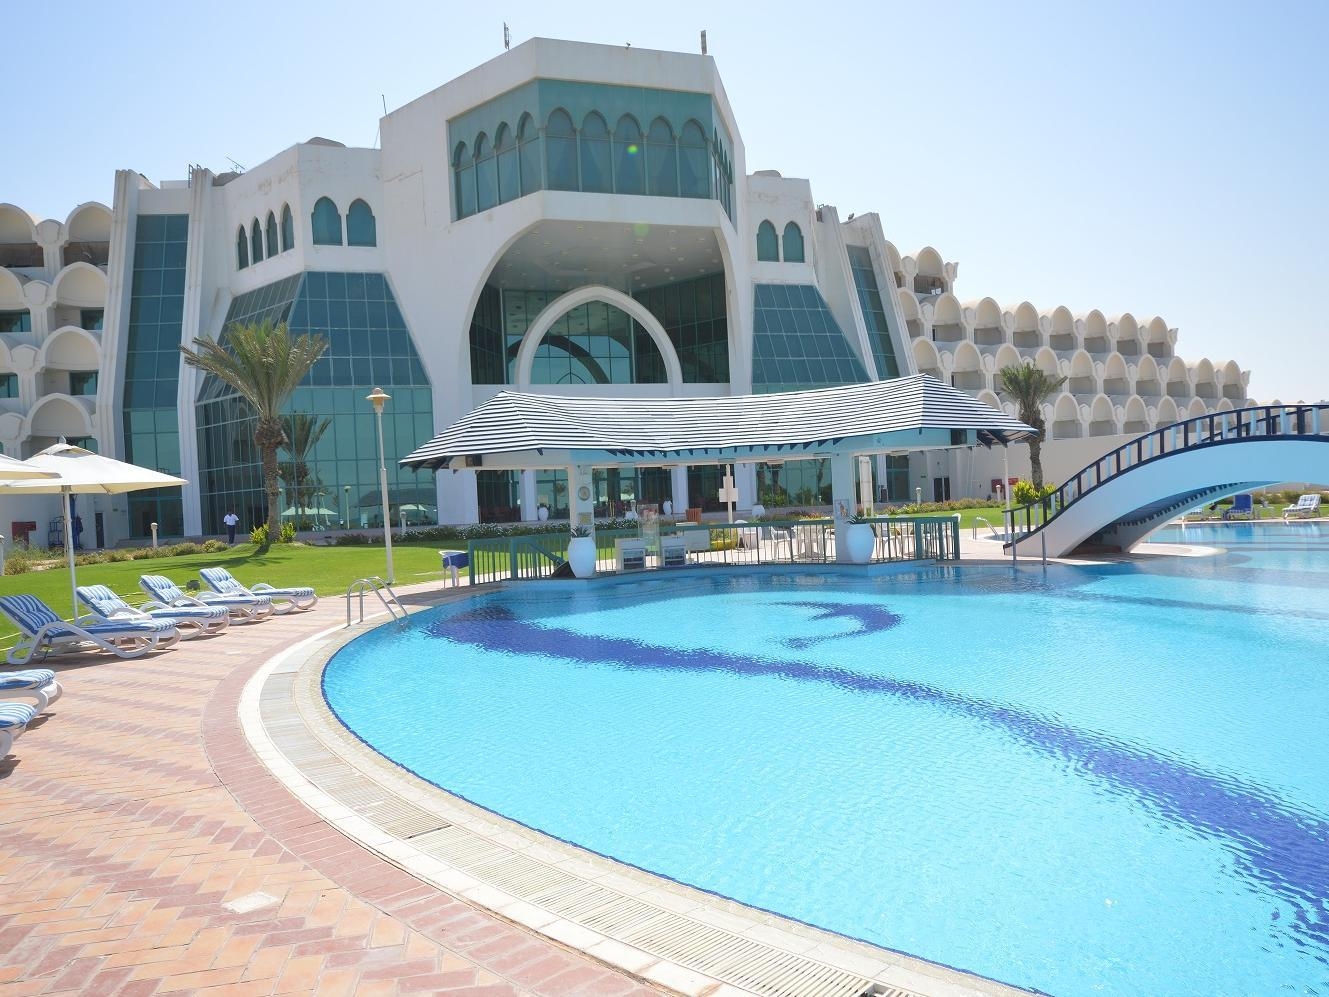 Mirfa Hotel - Hotels and Accommodation in United Arab Emirates, Middle East